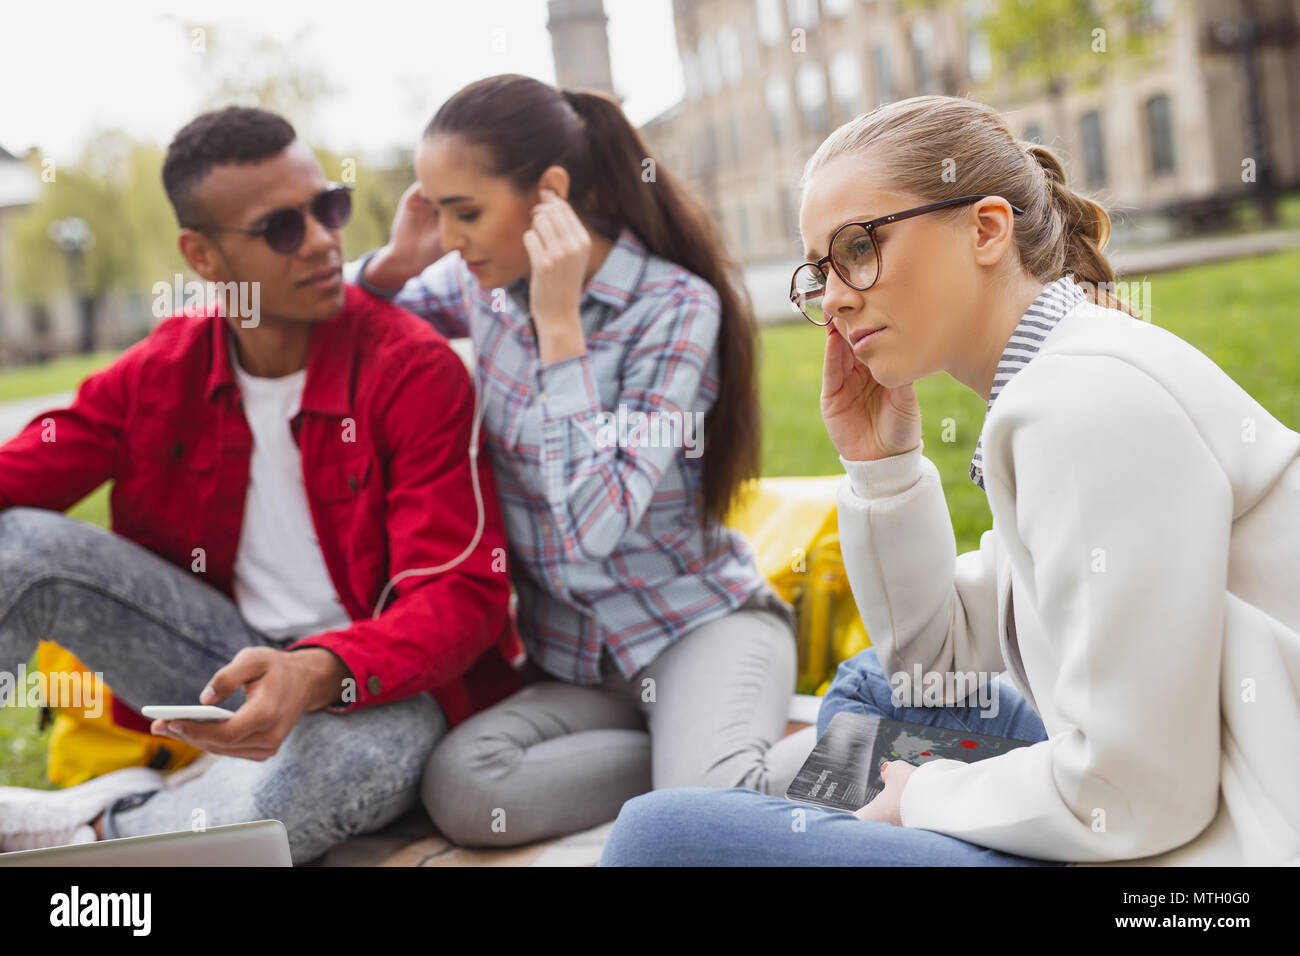 Blonde-haired student feeling thoughtful - Stock Image